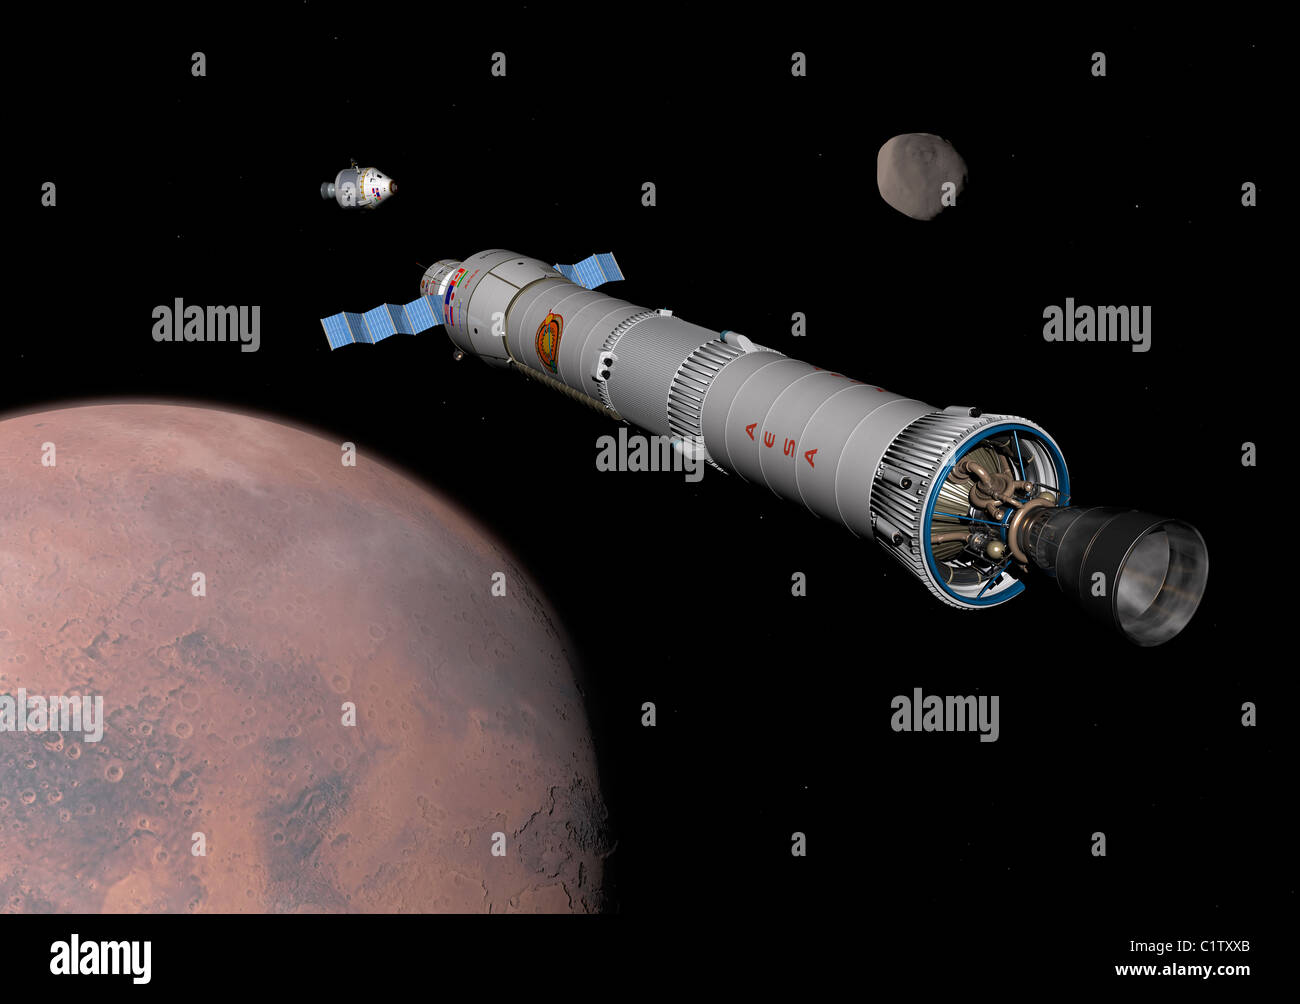 The Phobos mission rocket prepares for approach to the martian moon. - Stock Image